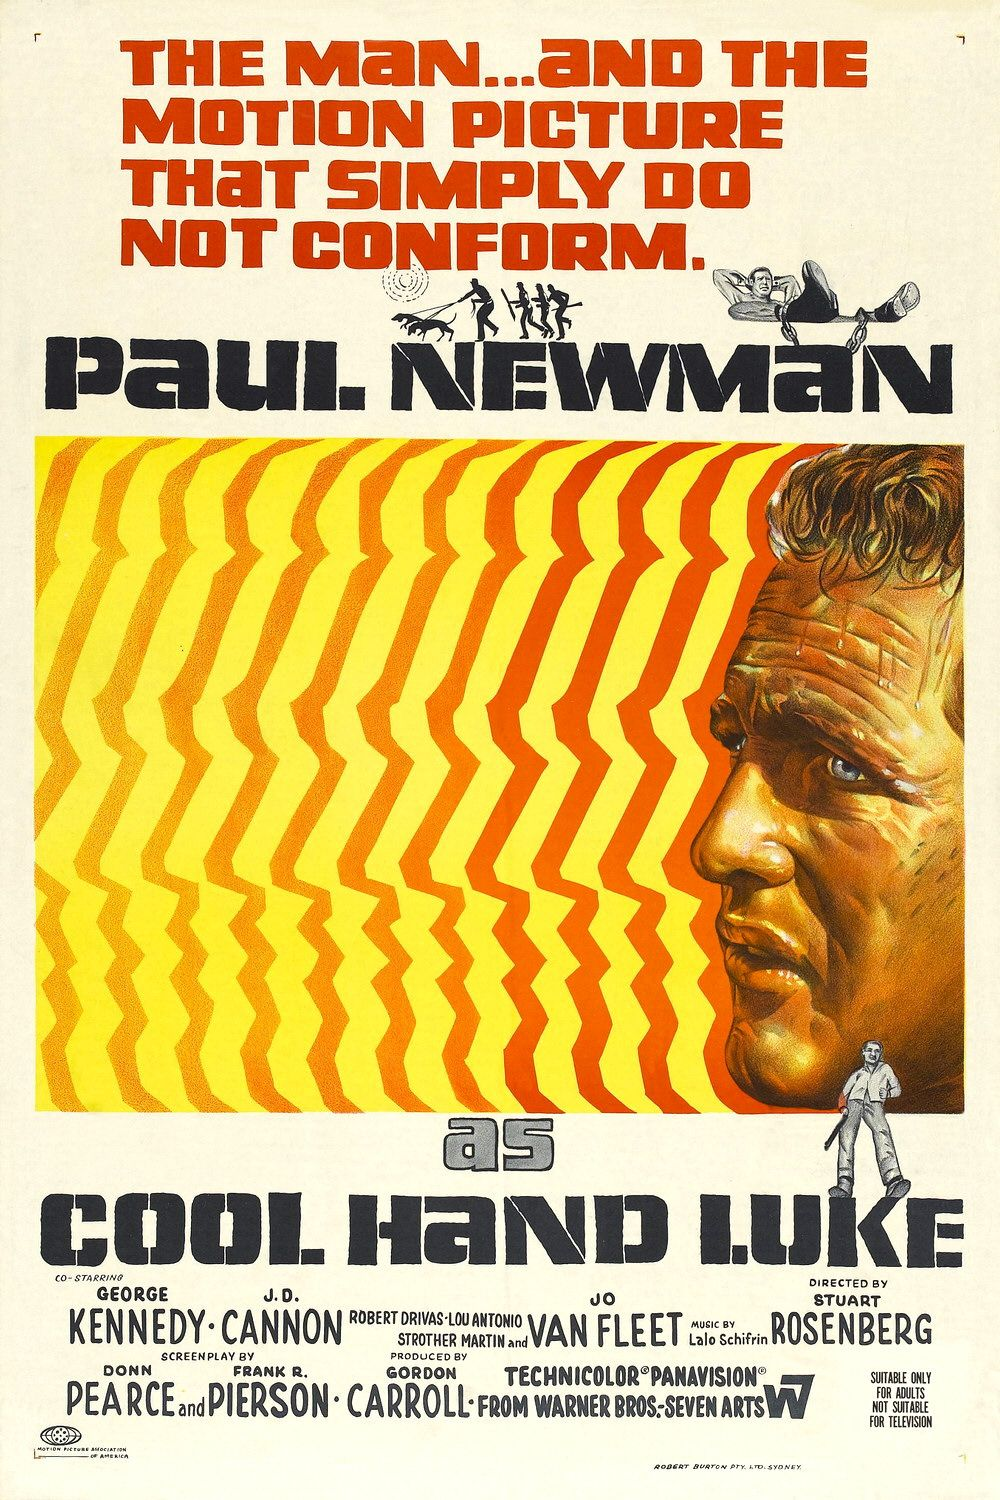 an analysis of donn pearces novel cool hand luke A few years ago, fernando melendez asked his neighbor donn pearce to help him sail a boat home from key west to fort lauderdale on the drive down, pearce -- author of cool hand luke, novel and.